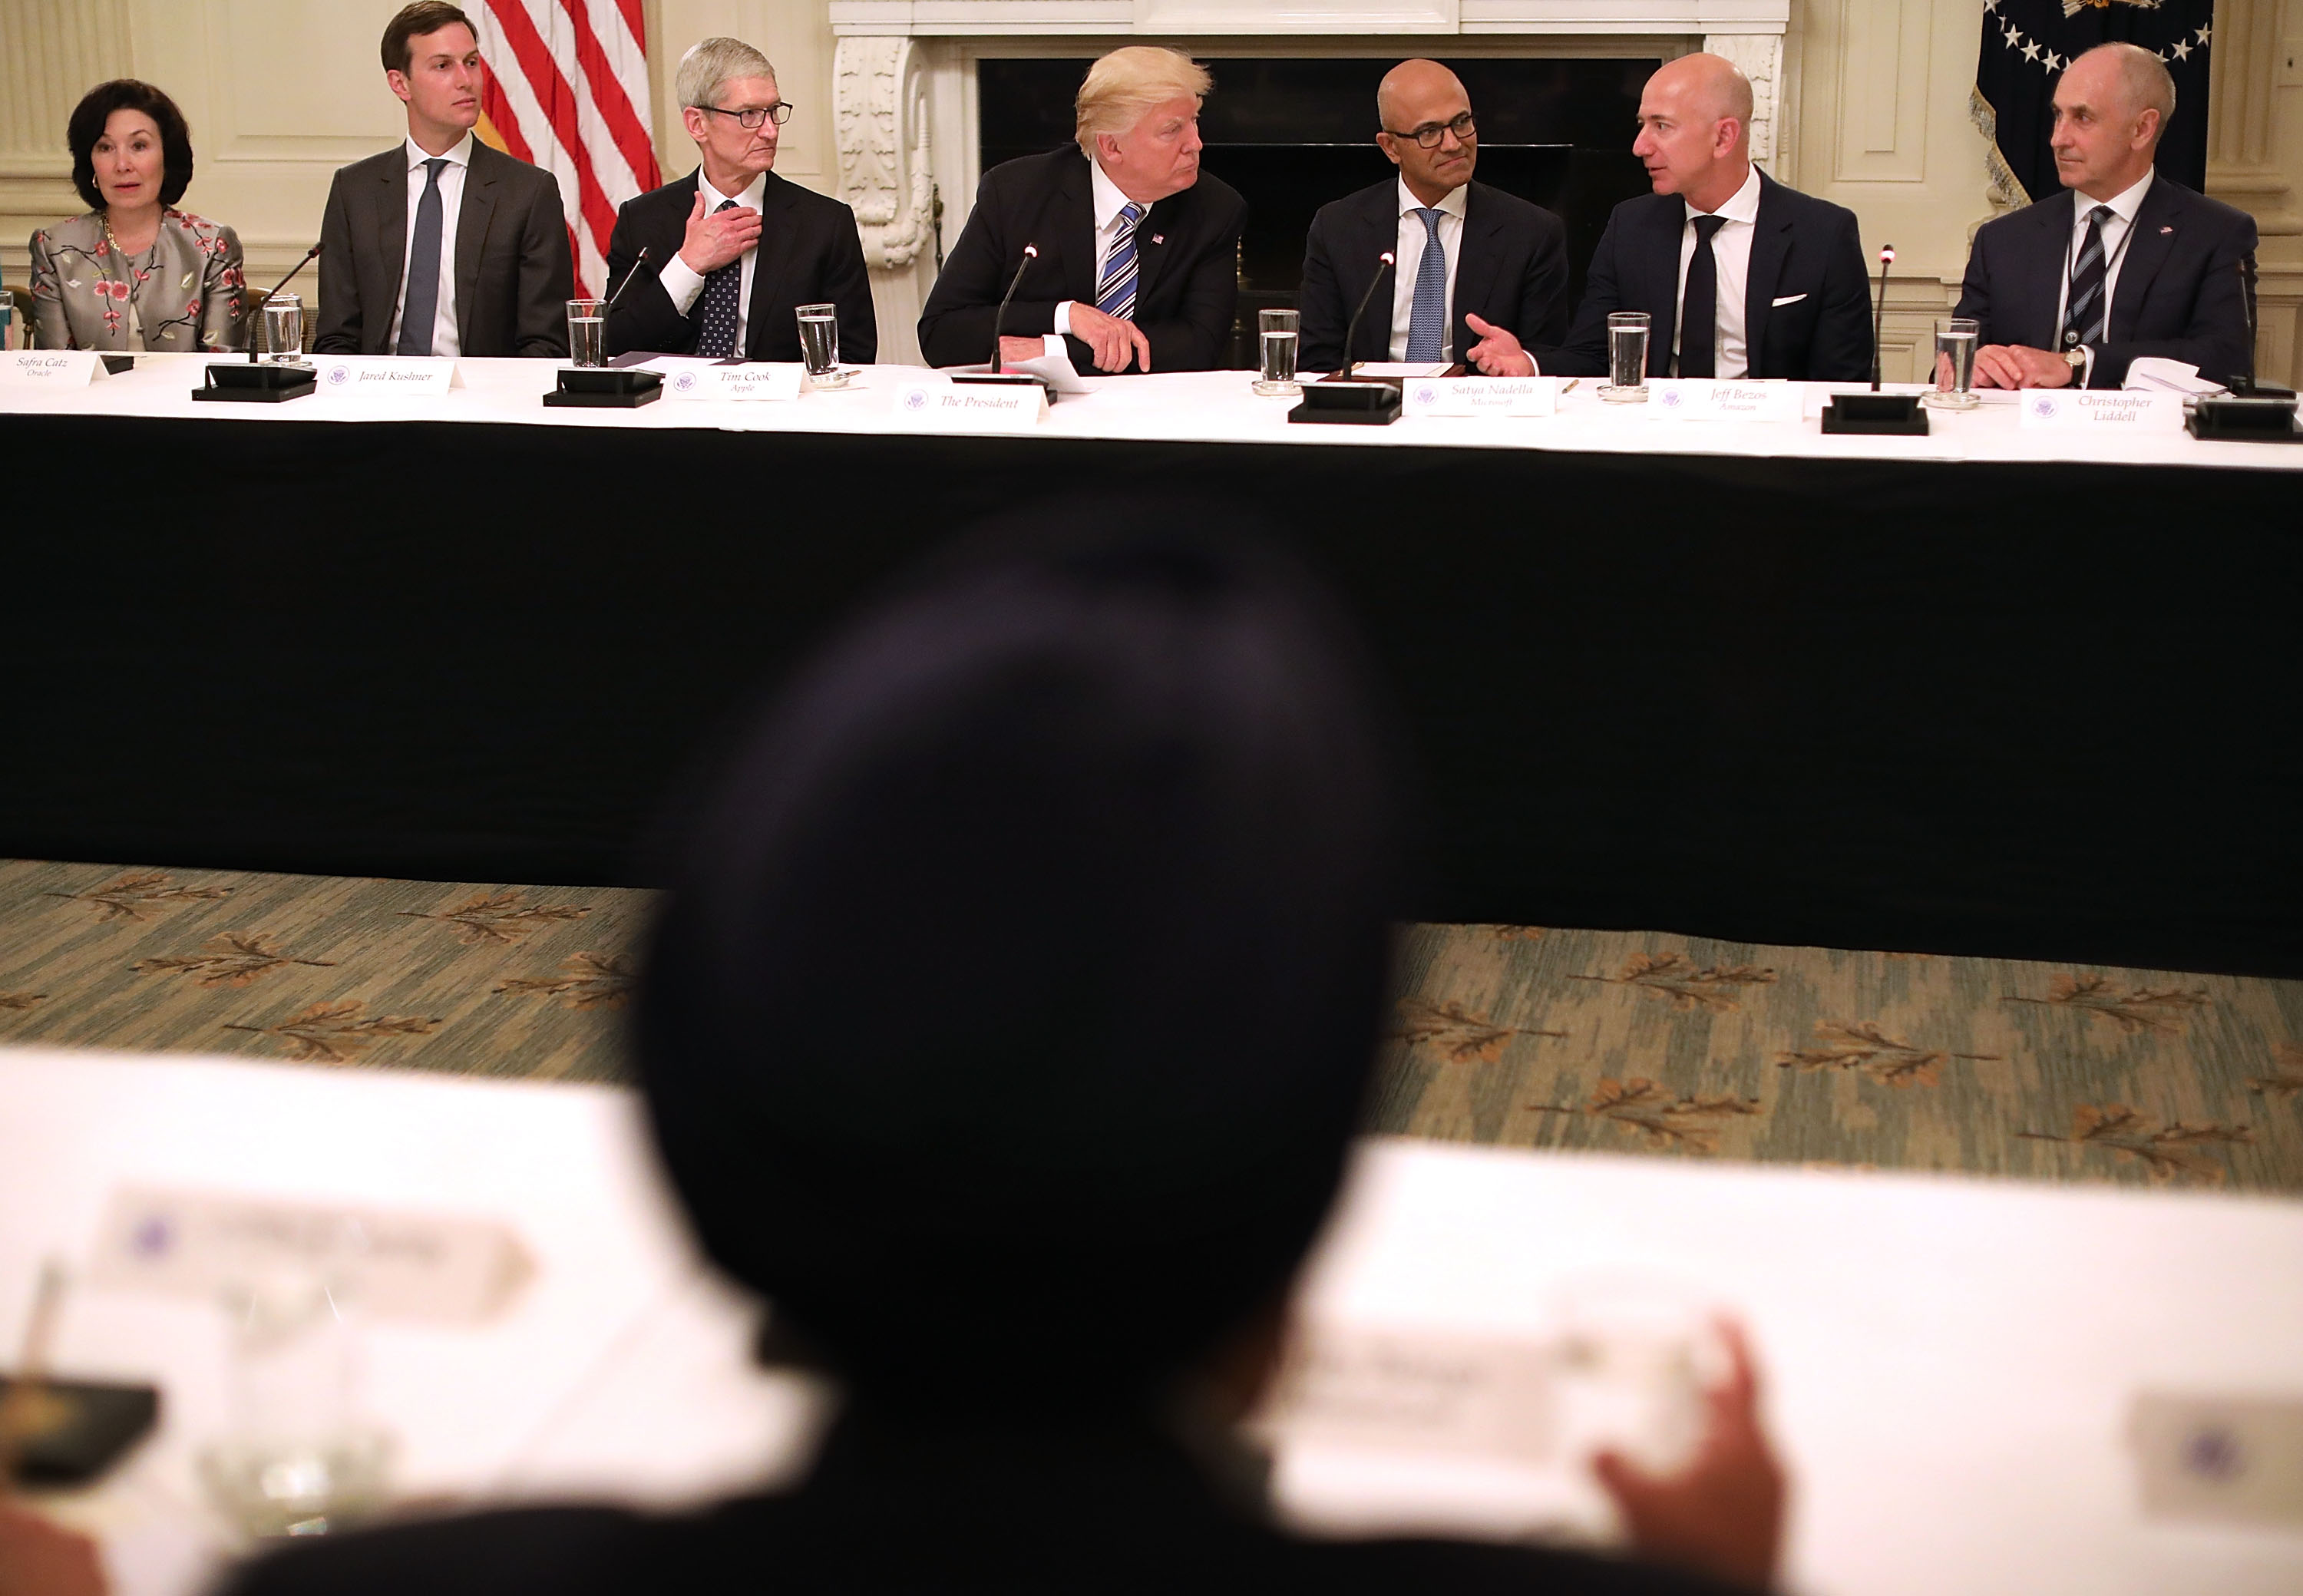 President Trump's American Technology Council Roundtable with Oracle's Safra Catz, Apple's Tim Cook, Microsoft's Satya Nadella and Amazon's Jeff Bezos, among others.